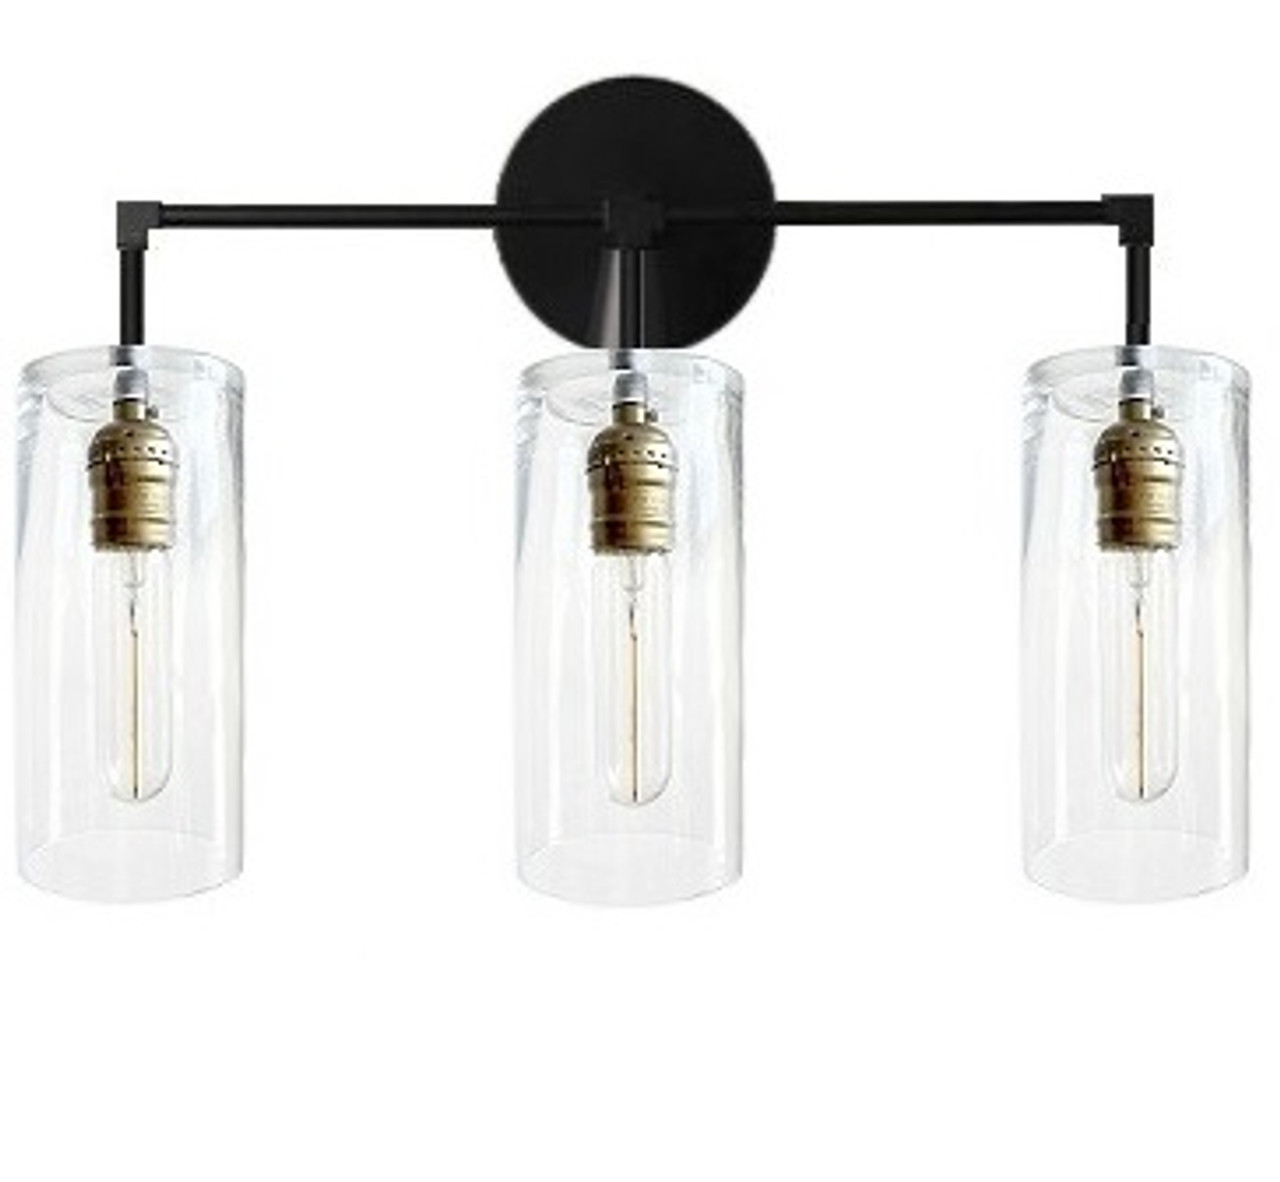 pretty nice 7d885 c5e4a 3 Arm bathroom vanity - Modern industrial fixture glass - Black wall lamp  Industrial, Wall sconce light - LED Edison bulbs electric light fixture